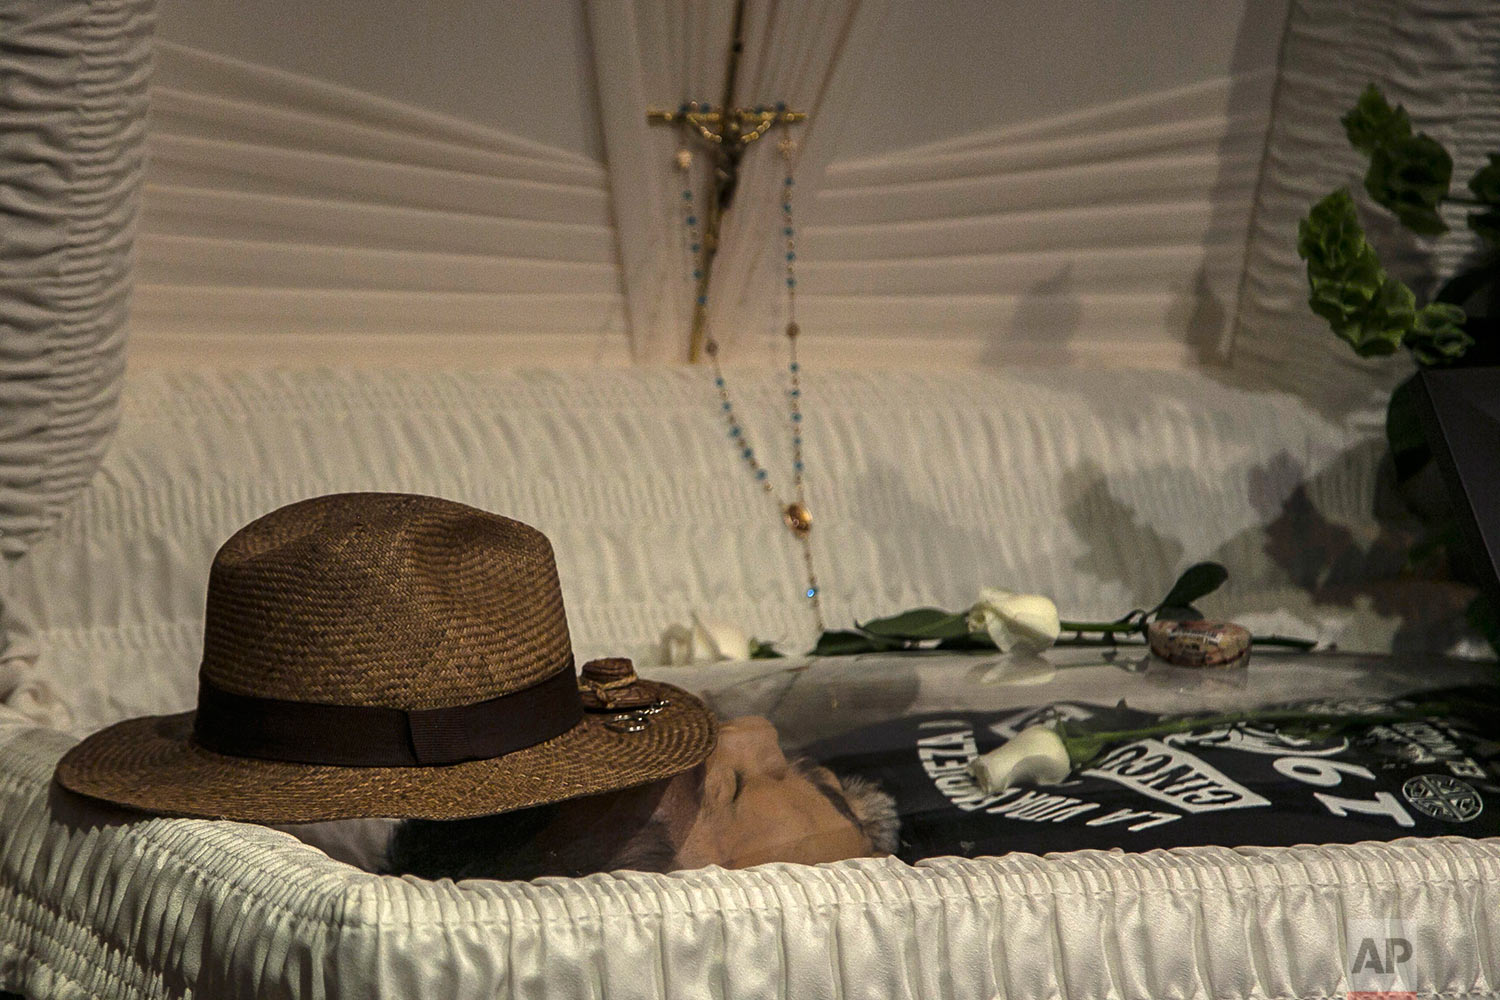 """In this May 16, 2017 photo, the hat of slain journalist Javier Valdez lays on his forehead inside a funeral home before his wake begins in Culiacan, Mexico. """"The greatest error is to live in Mexico and to be a journalist,"""" wrote Valdez, a legend in Mexico and abroad, whose killing is seen as a milestone in Mexican violence against journalists. Valdez, 50, left a wife and two adult children. There have been no arrests _ which is no surprise to the national press corps. (AP Photo/Rashide Frias)"""